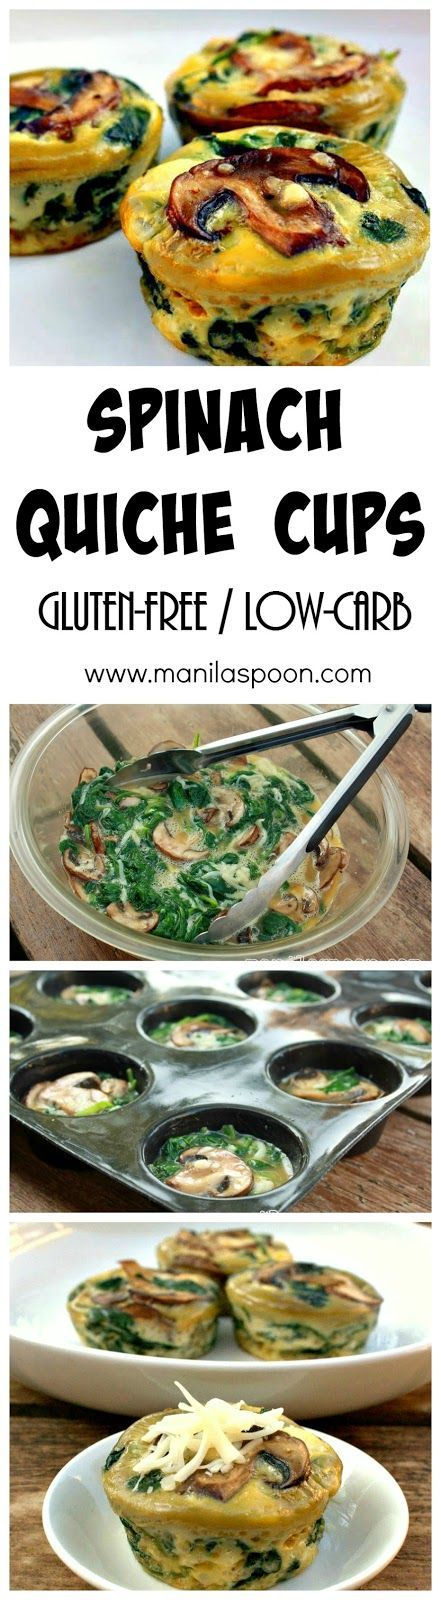 Completely gluten-free and low-carb is this healthy and delicious SPINACH QUICHE…